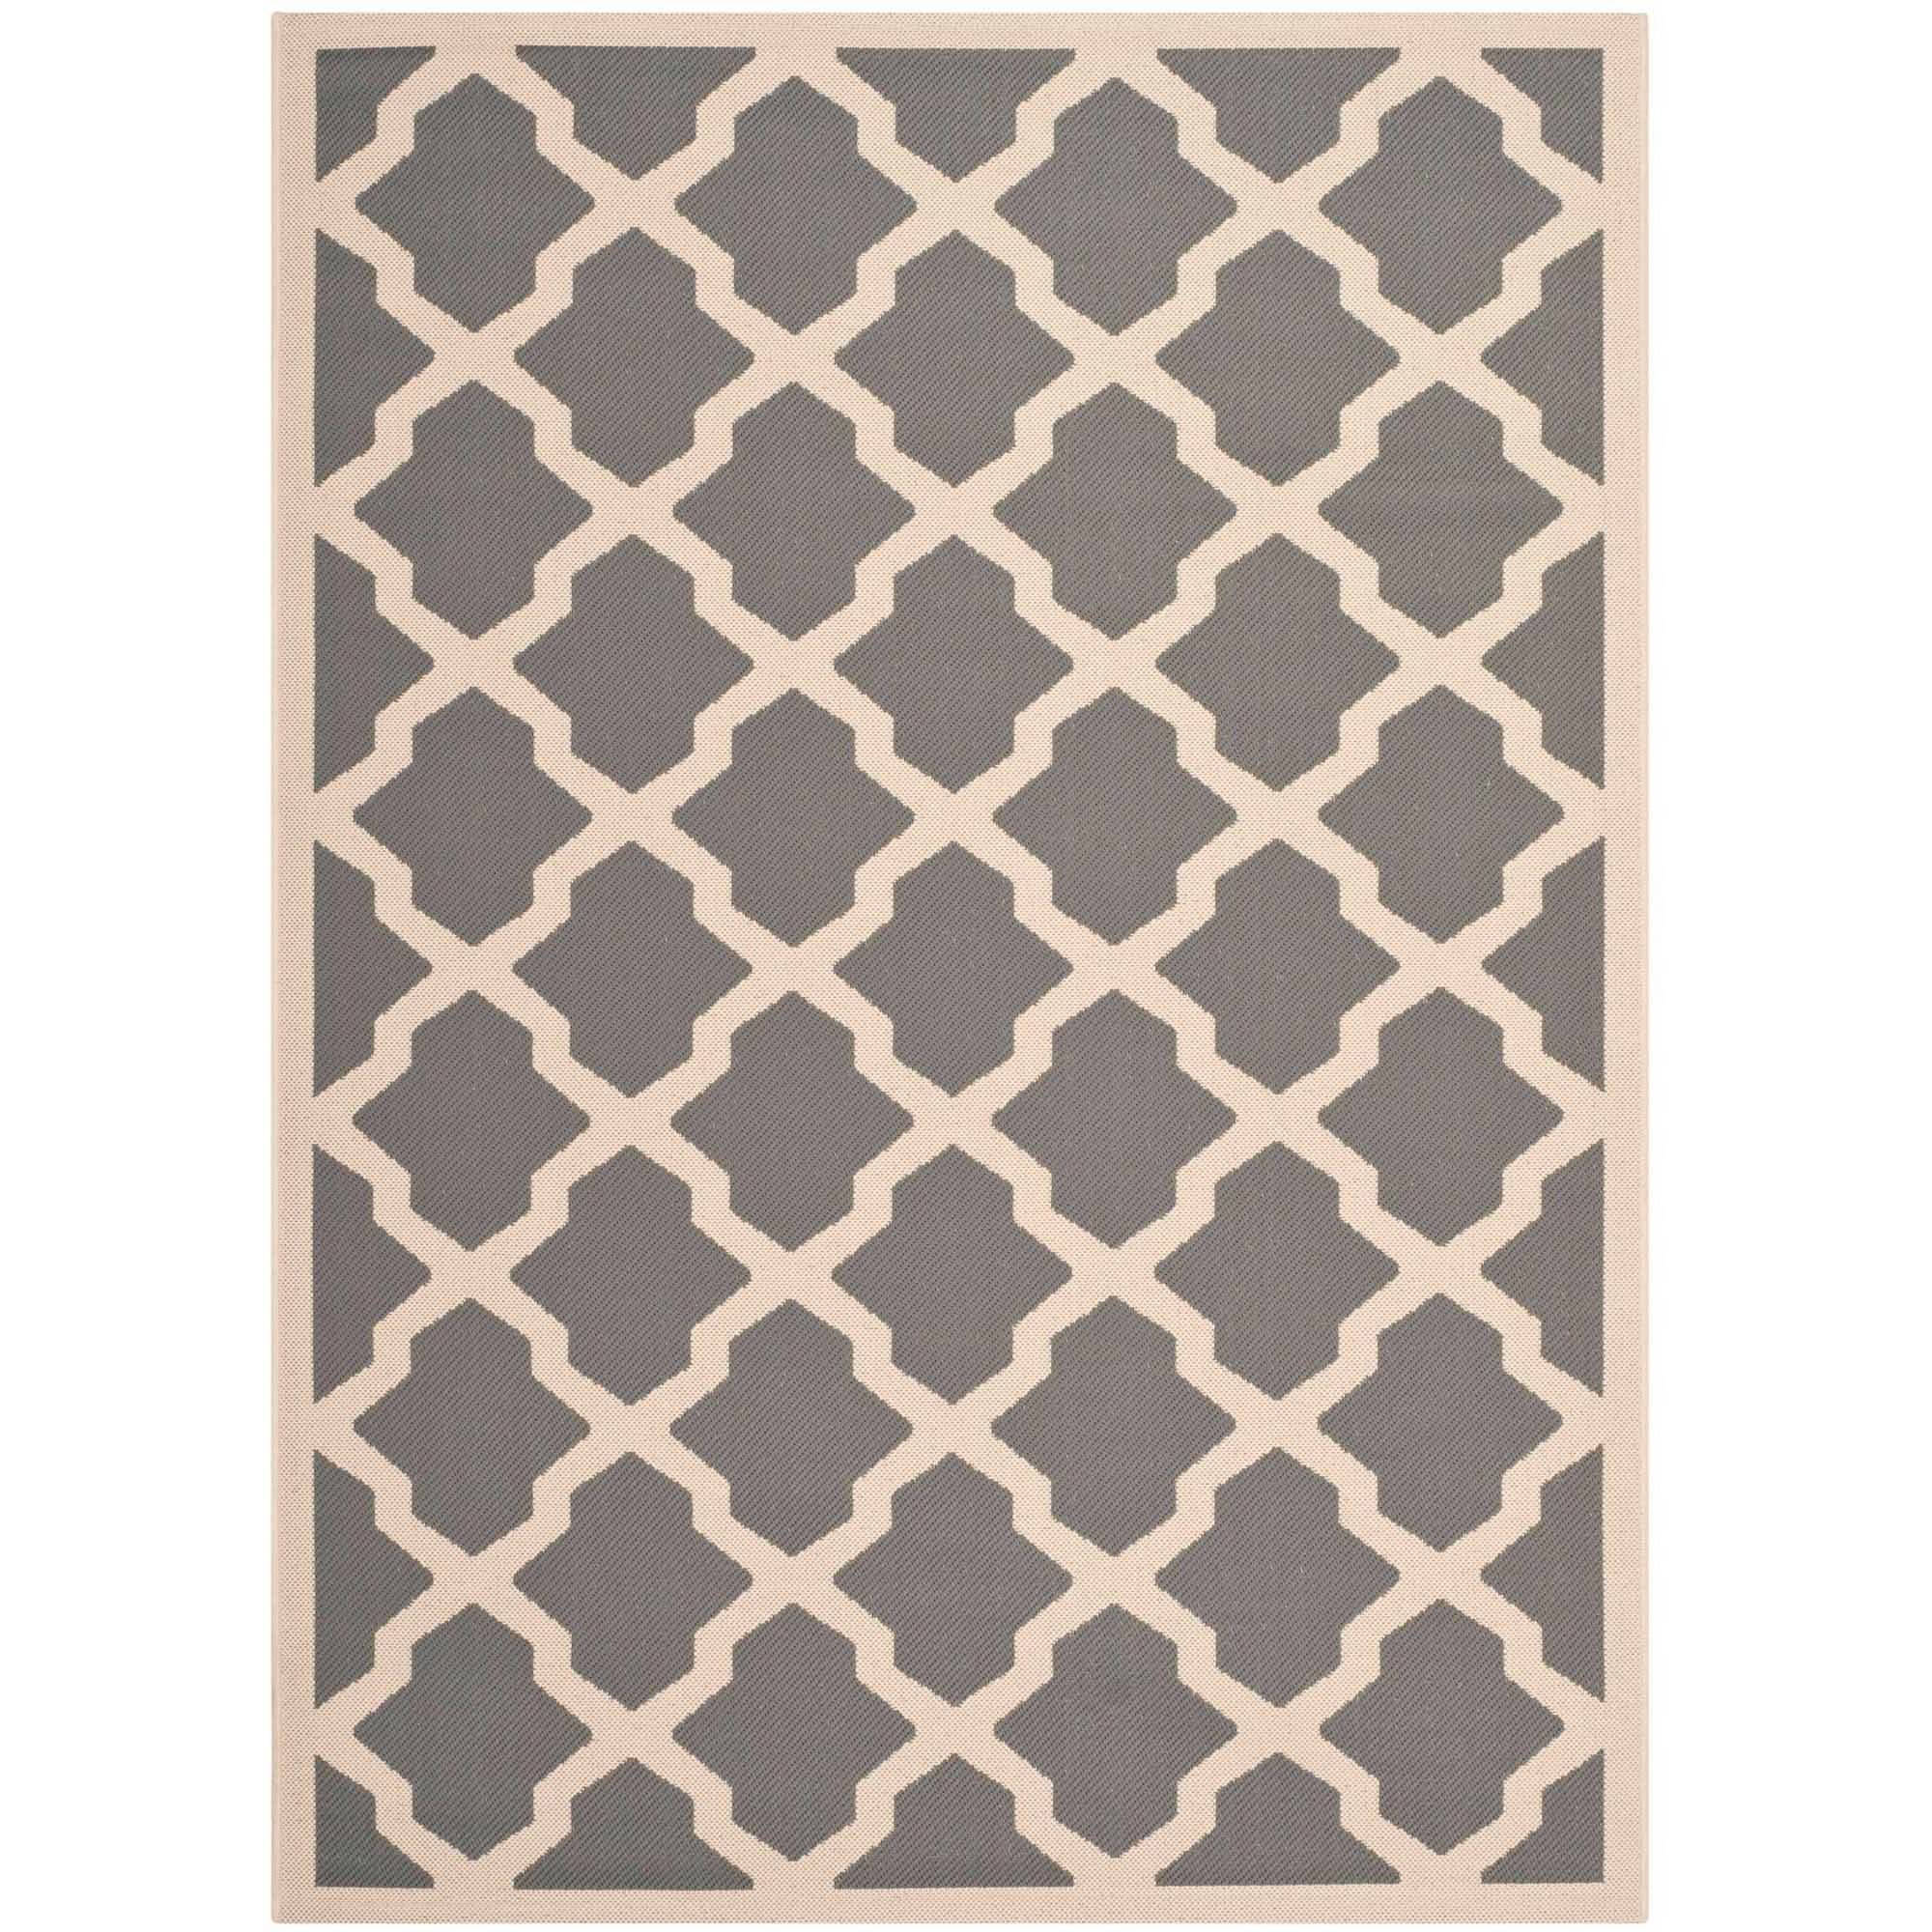 Safavieh Courtyard Amber Power-Loomed Indoor/Outdoor Area Rug or Runner